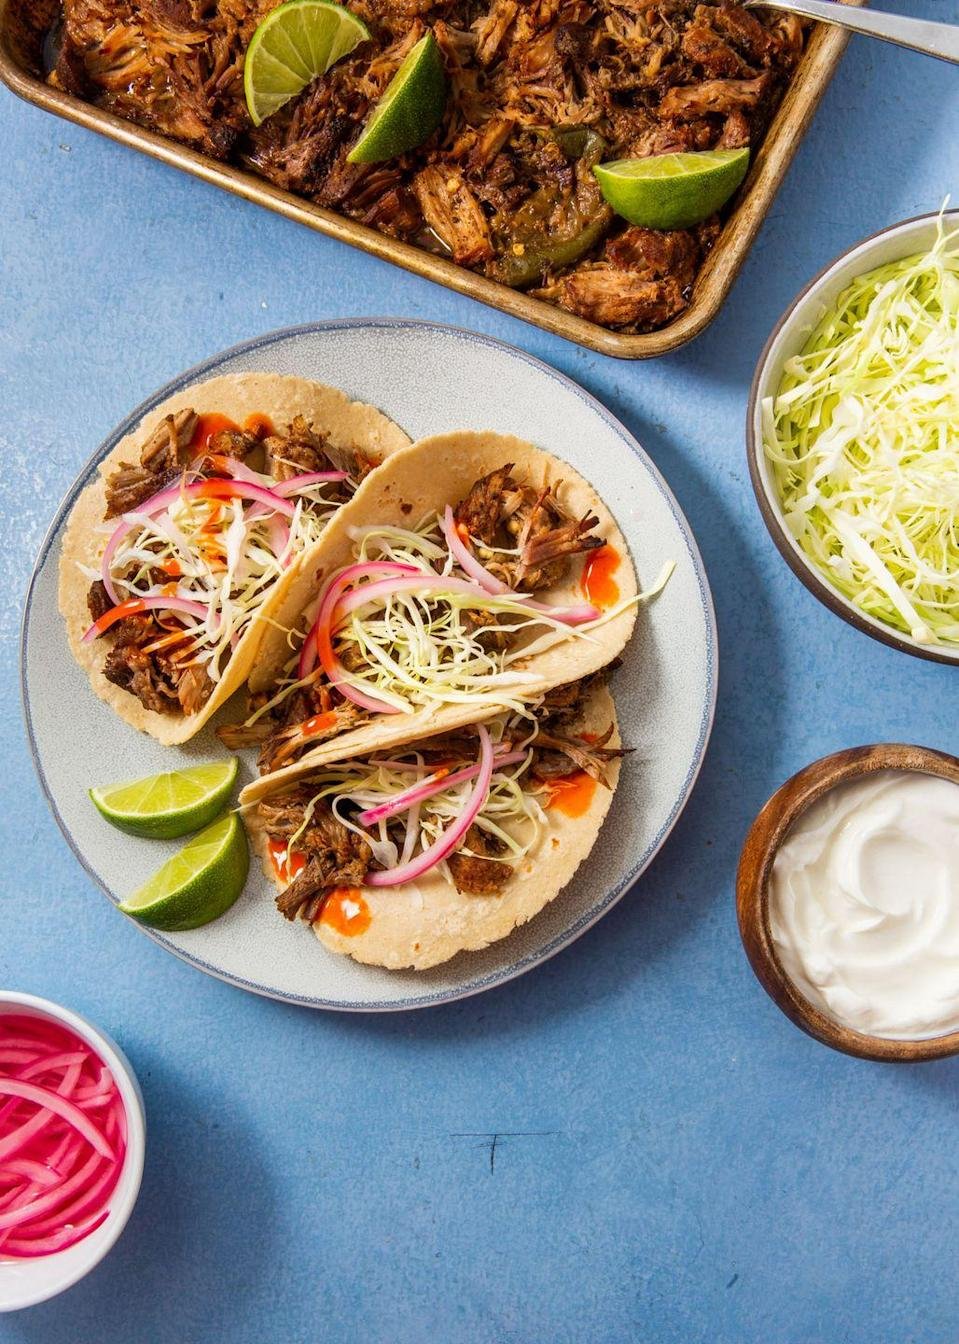 """<p>You can't beat only 35 minutes cooking time.</p><p>Get the recipe from <a href=""""https://www.delish.com/cooking/recipe-ideas/a30142746/instant-pot-pork-carnitas-recipe/"""" rel=""""nofollow noopener"""" target=""""_blank"""" data-ylk=""""slk:Delish"""" class=""""link rapid-noclick-resp"""">Delish</a>.</p>"""